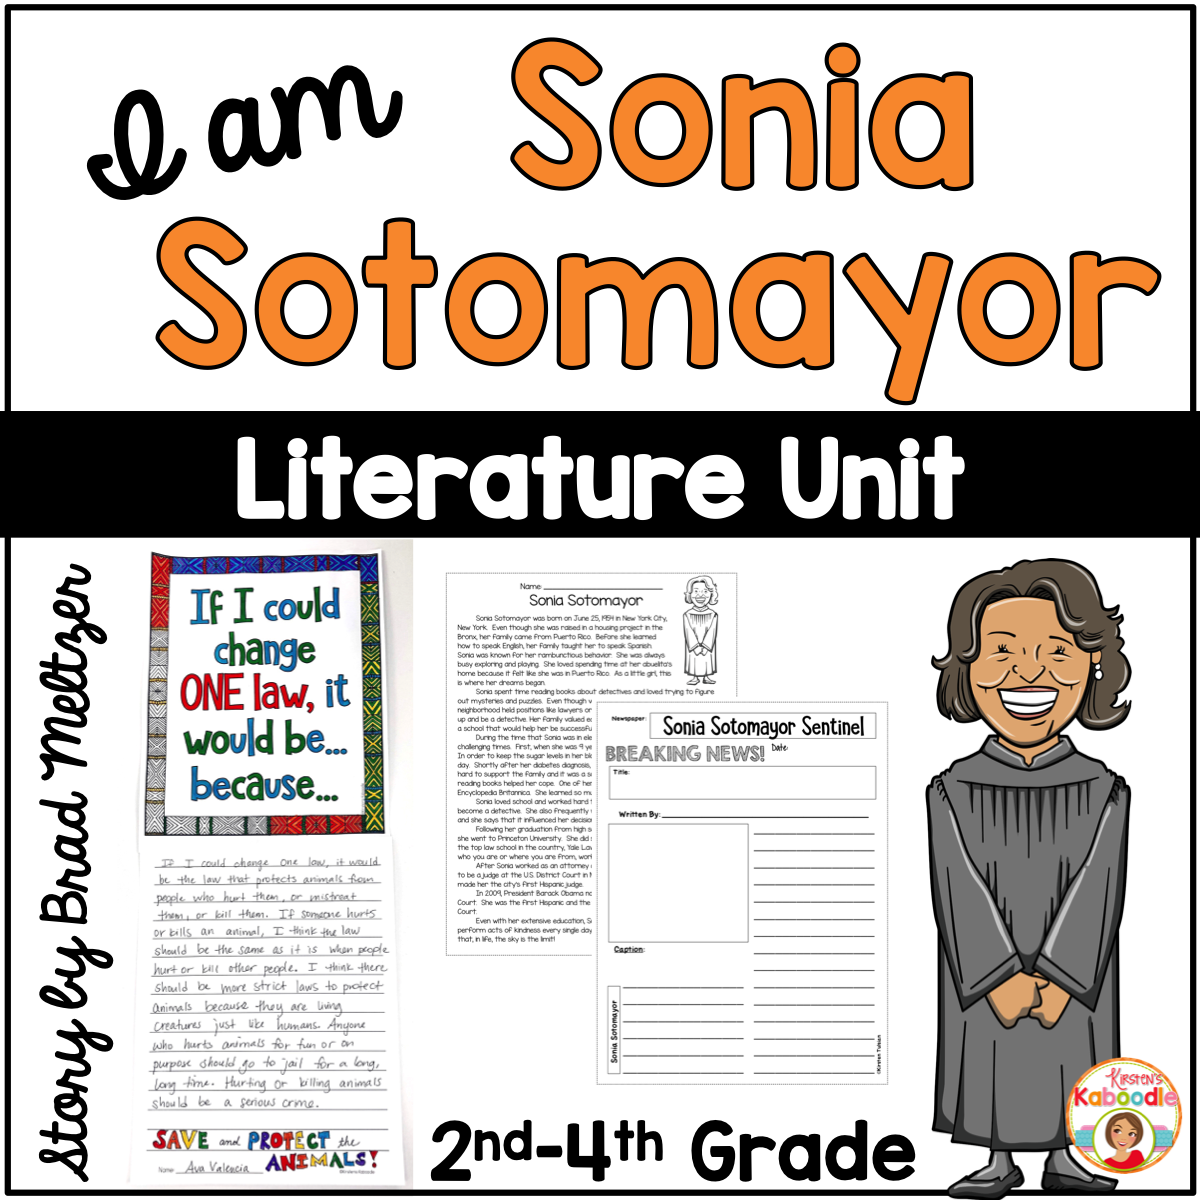 I am Sonia Sotomayor Activities